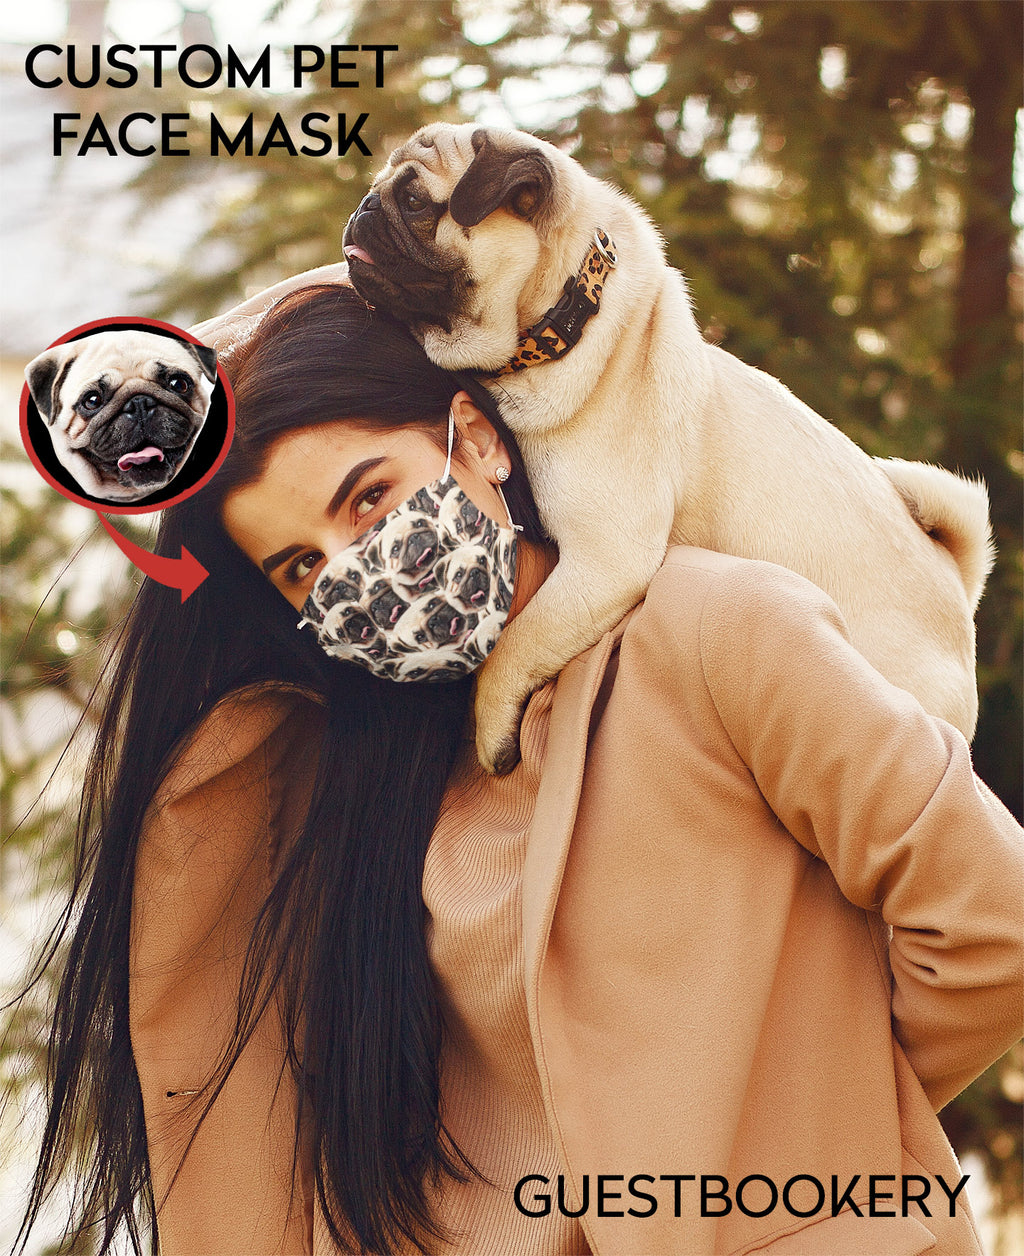 Custom pet face mask